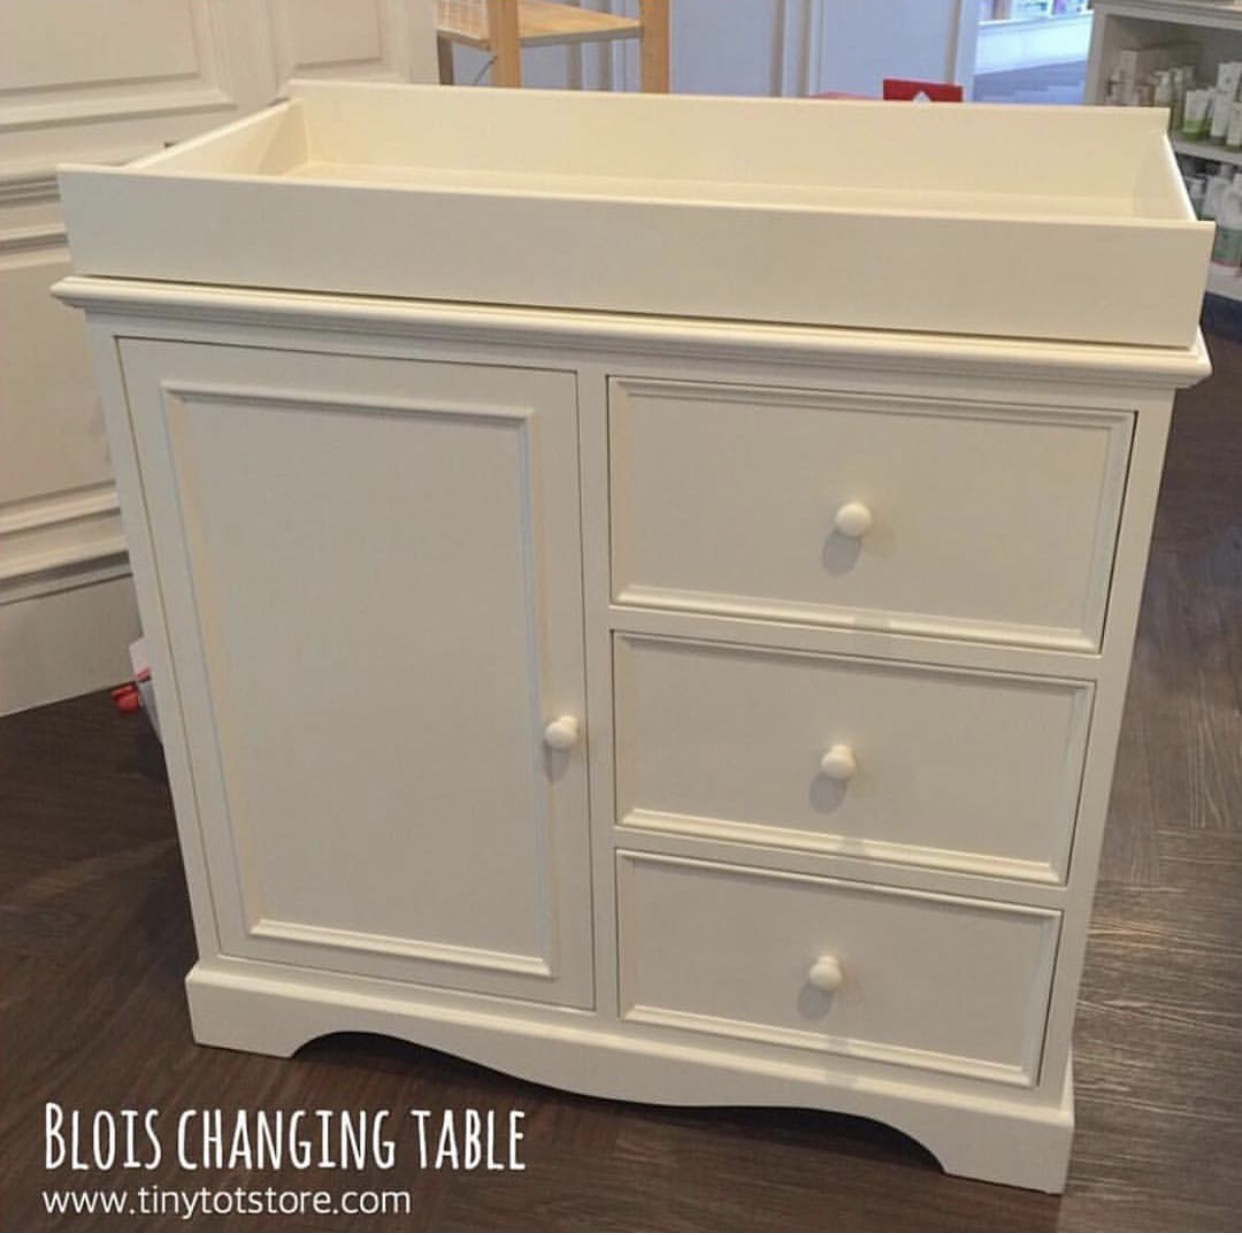 Blois Changing Table